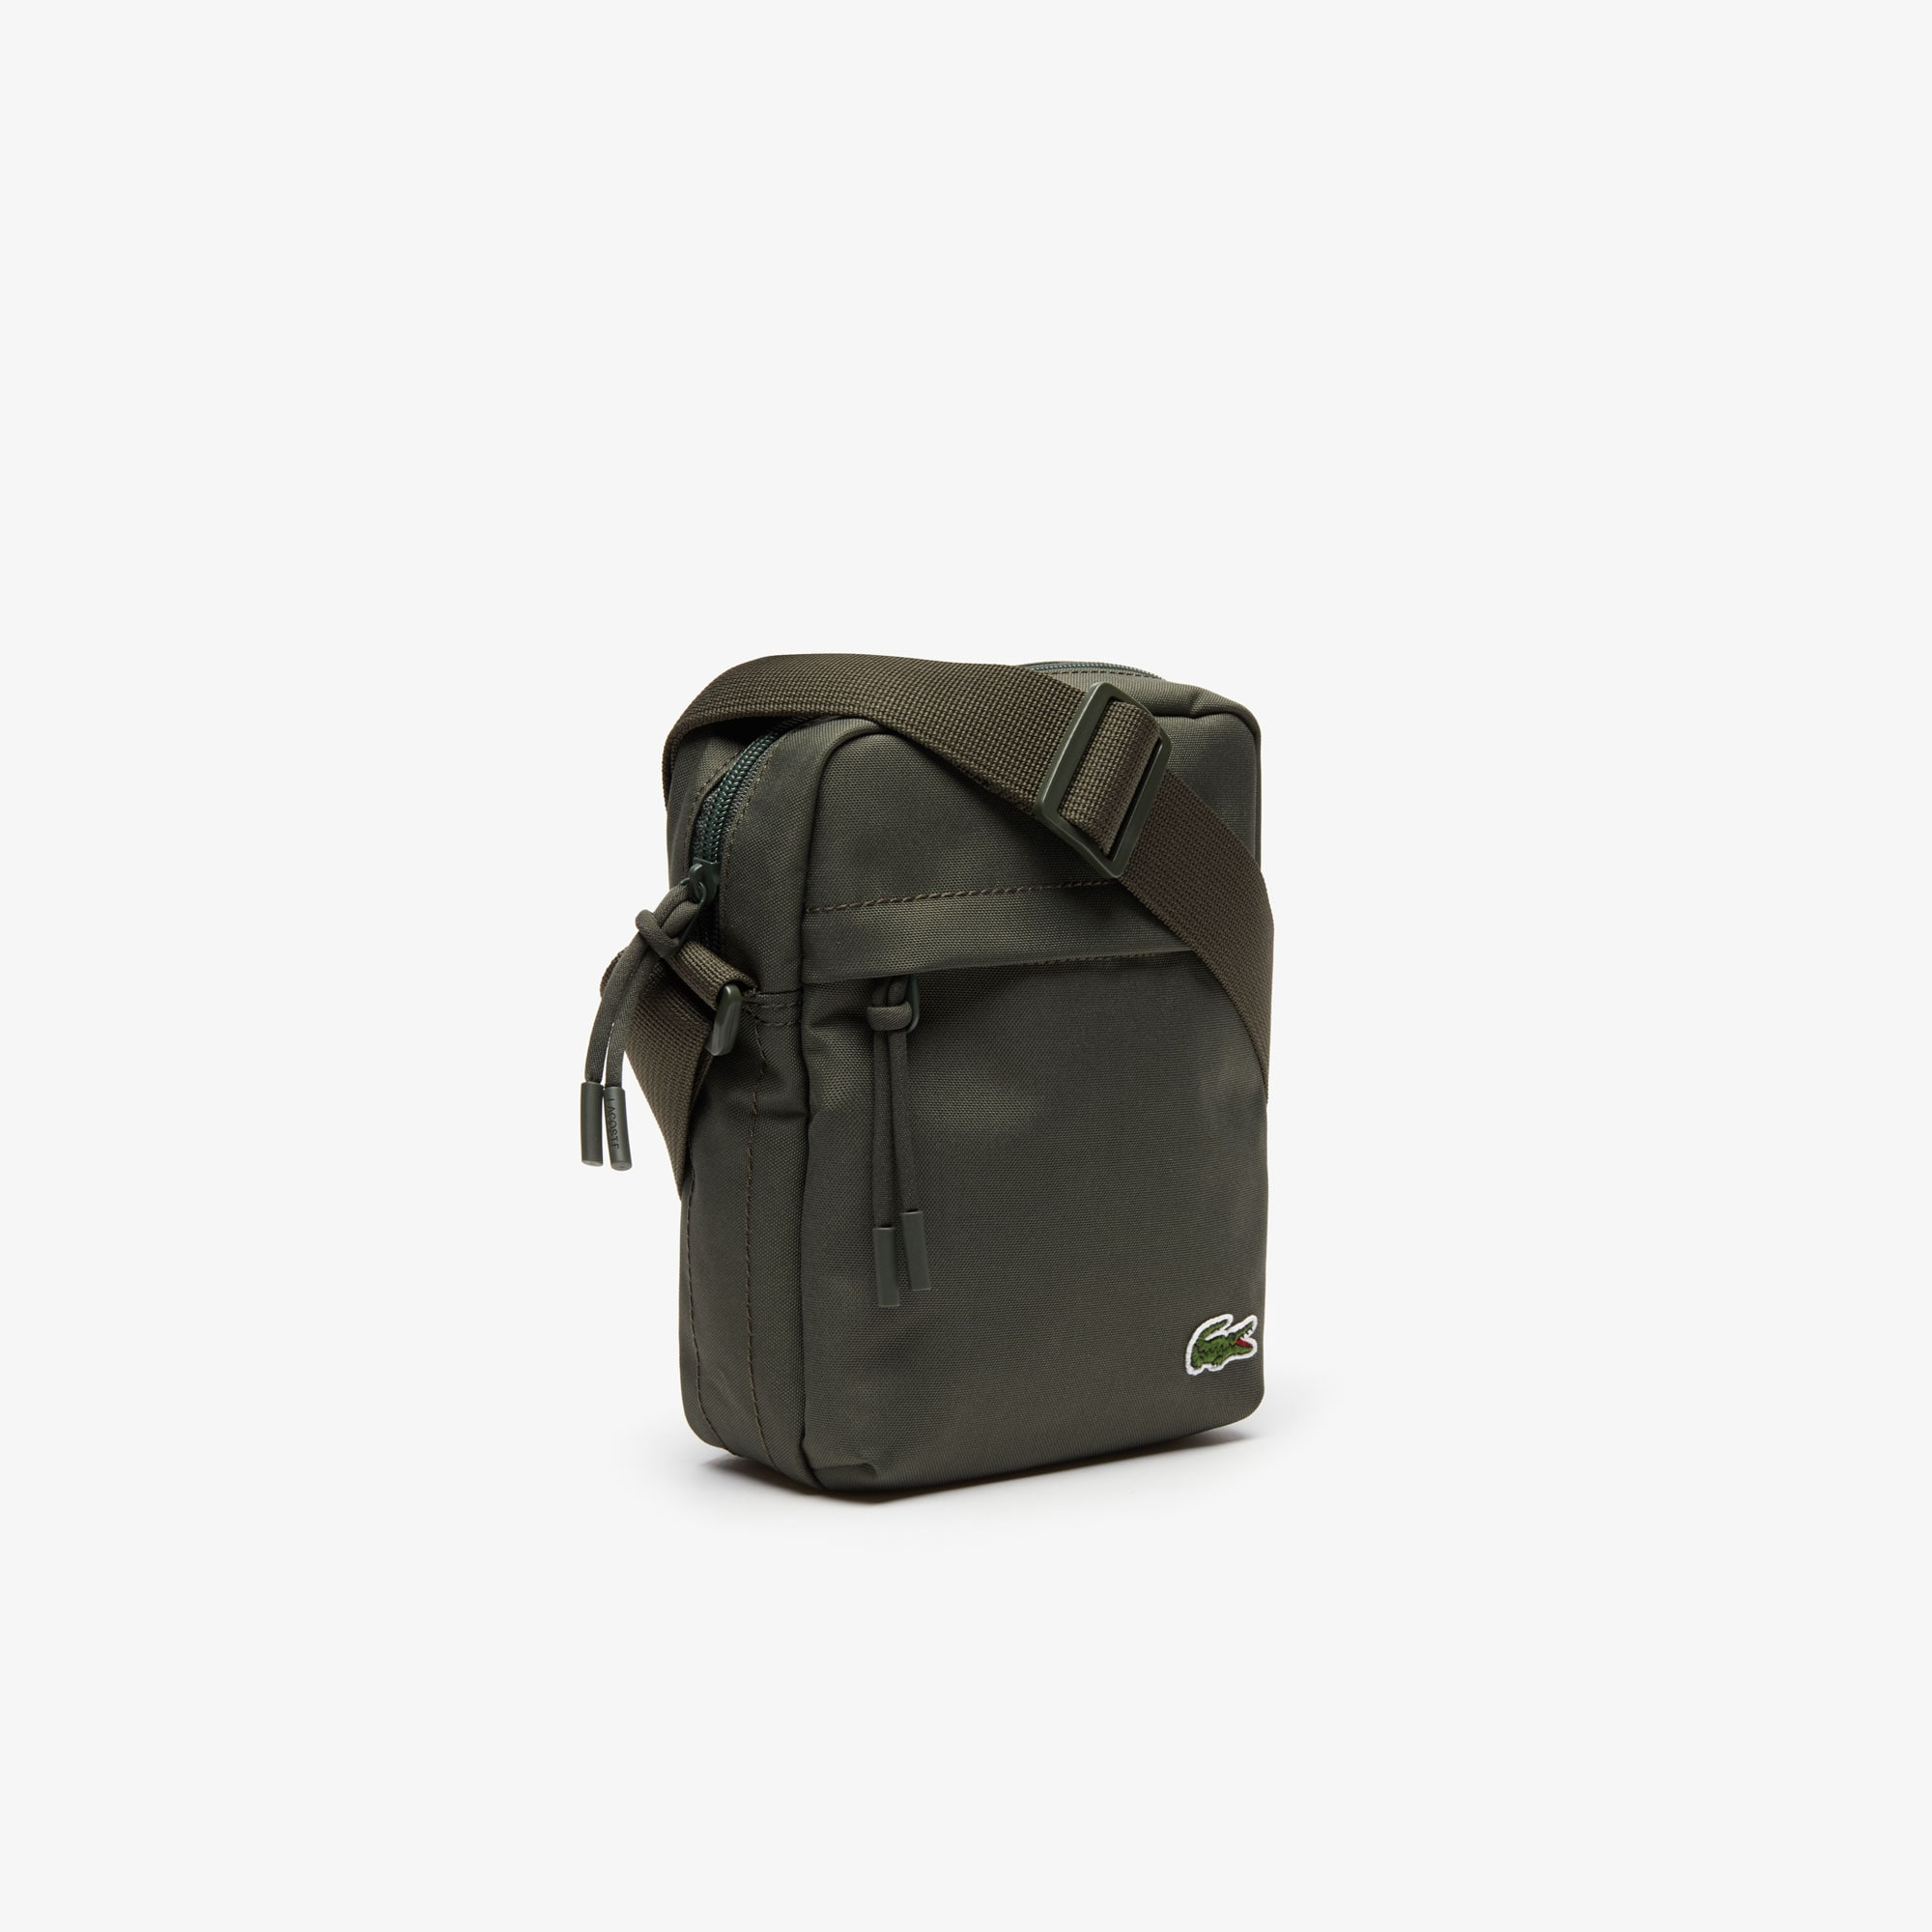 Men's Neocroc Canvas Vertical All-Purpose Bag